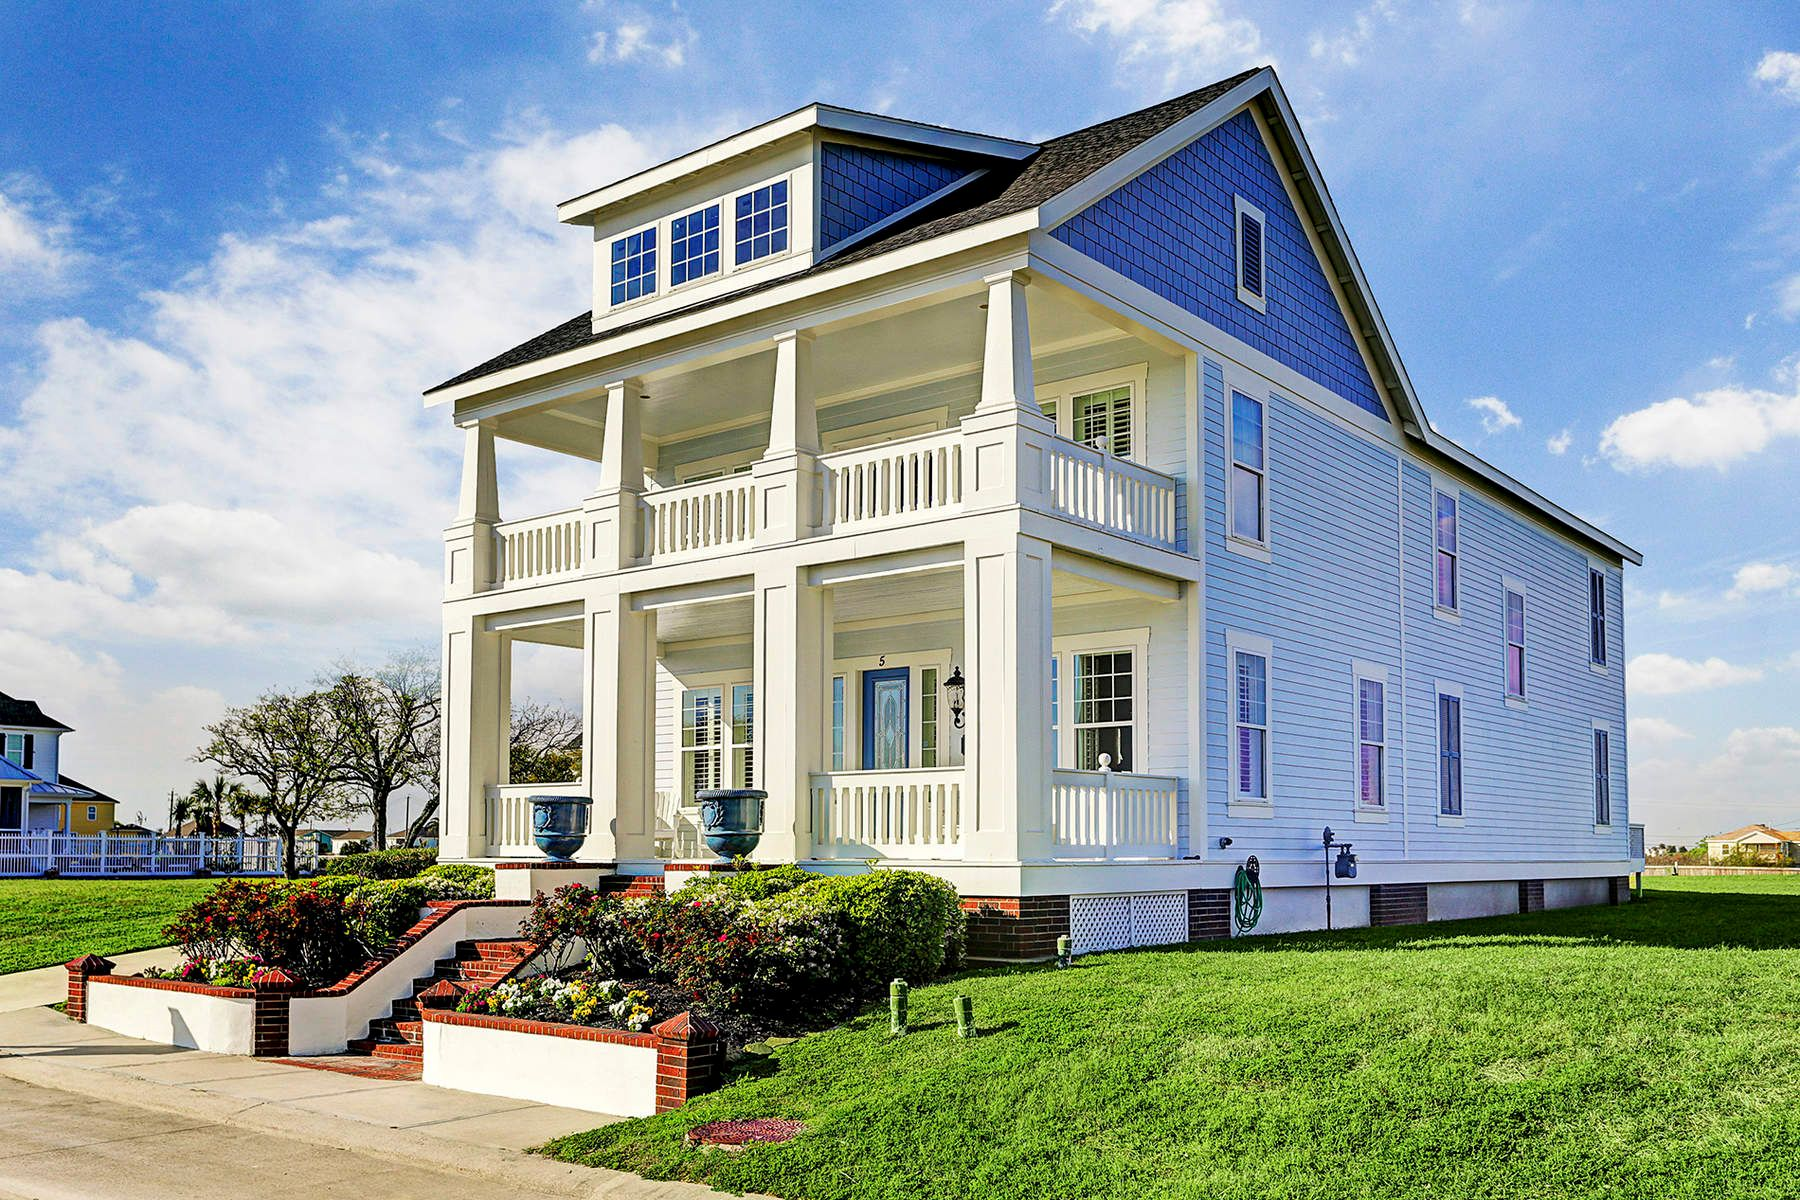 Single Family Homes for Active at 5 Porch Street Galveston, Texas 77554 United States